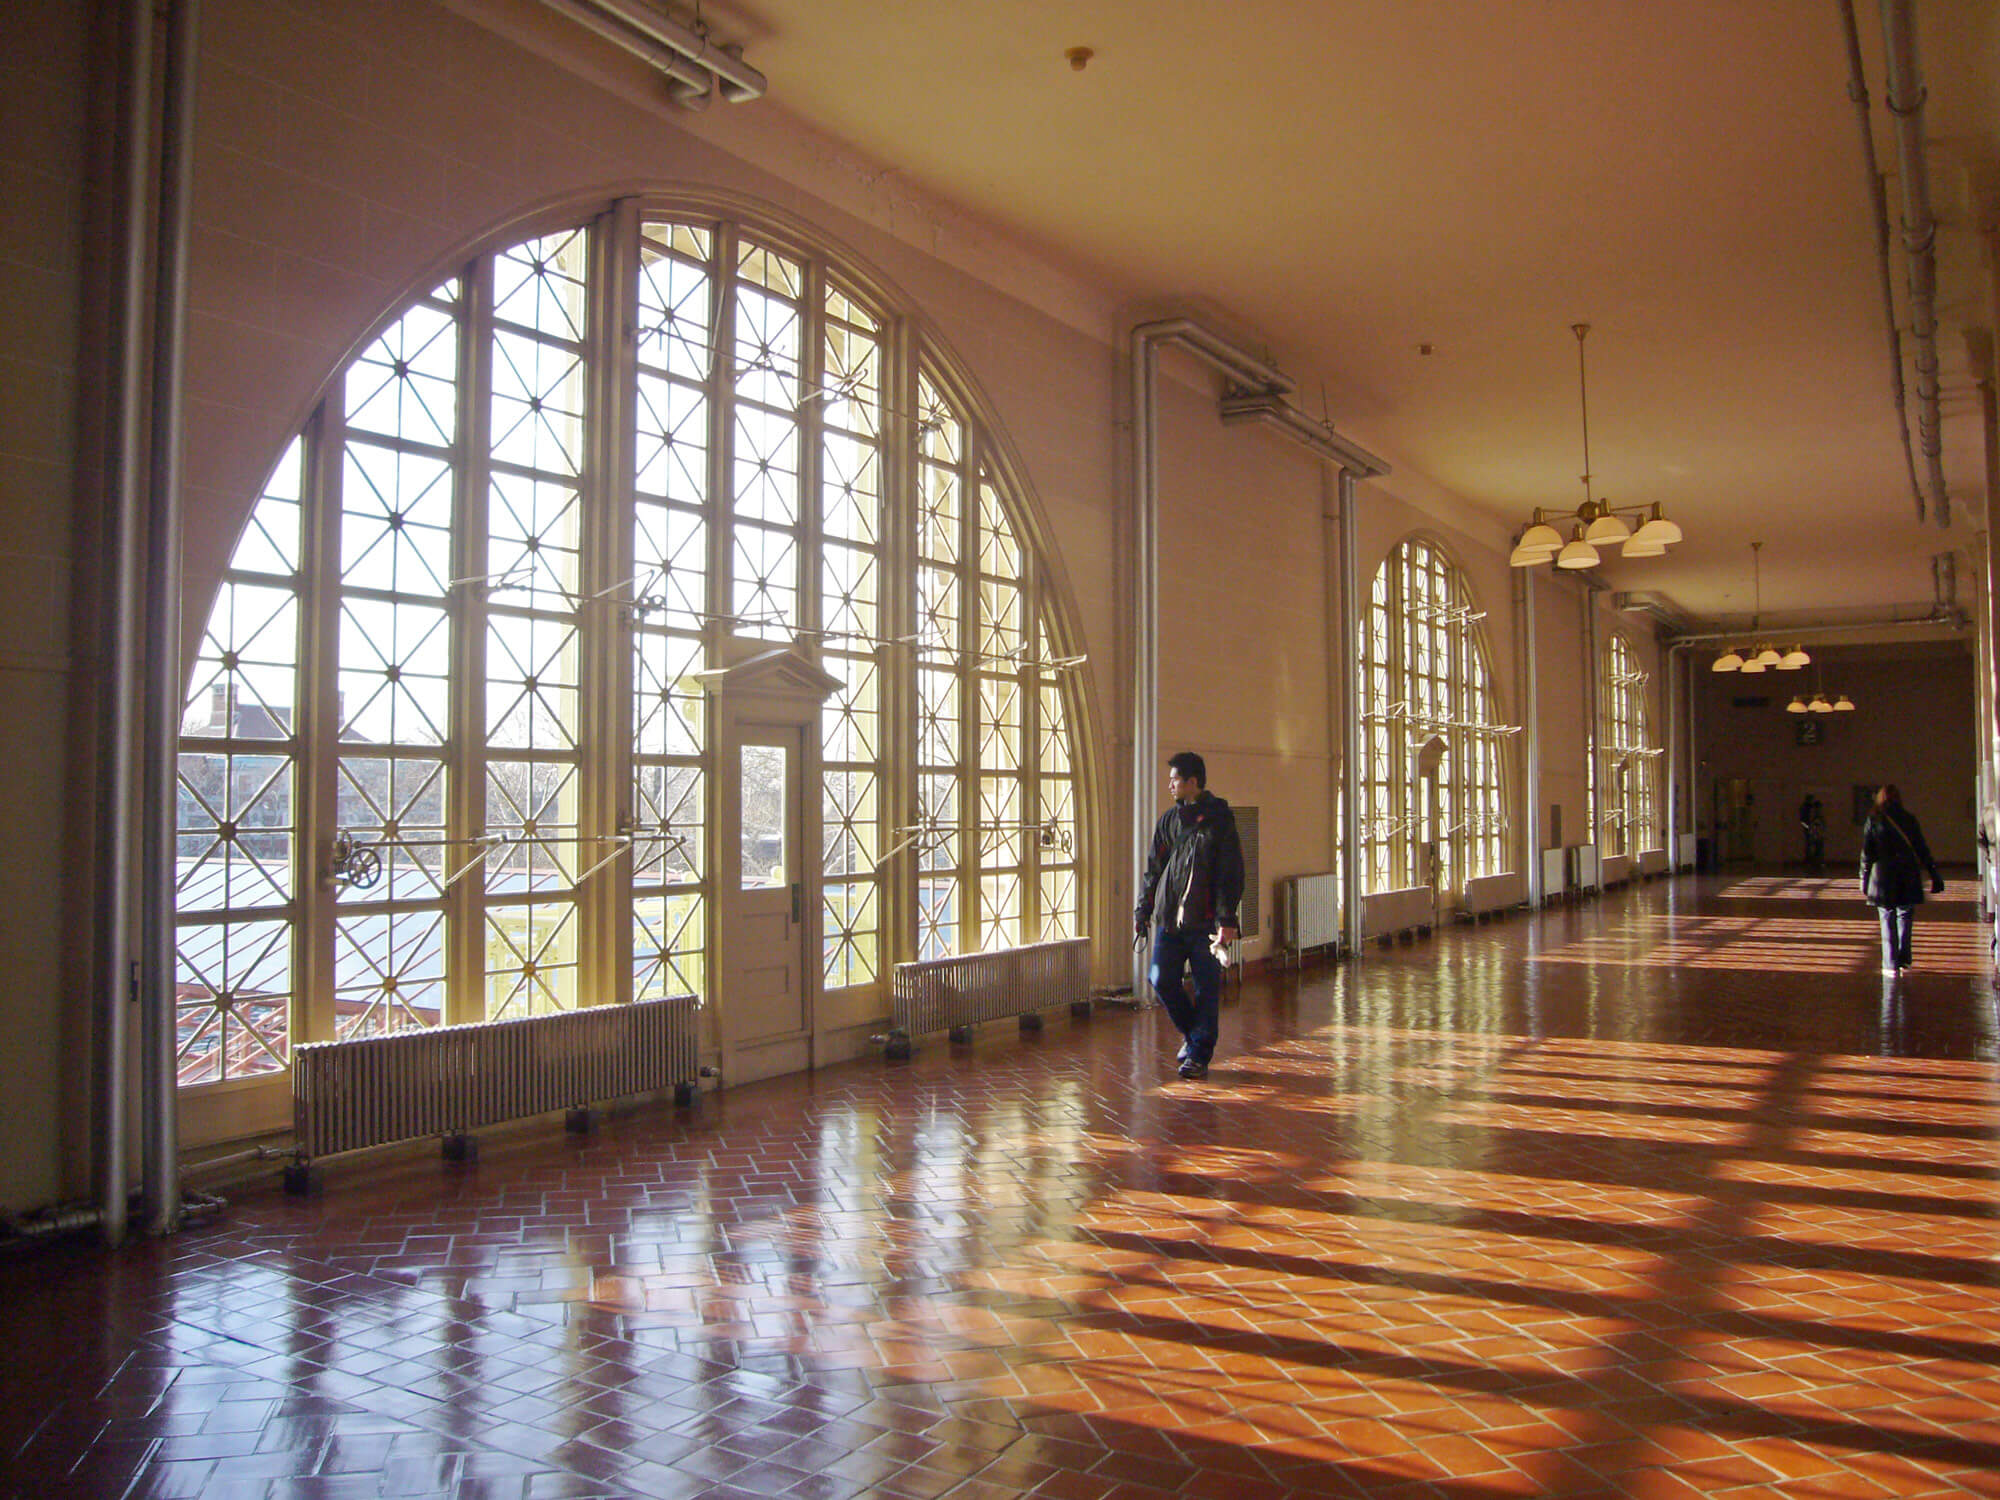 Man walking in front of large arched windows at the Ellis Island Museum of Immigration